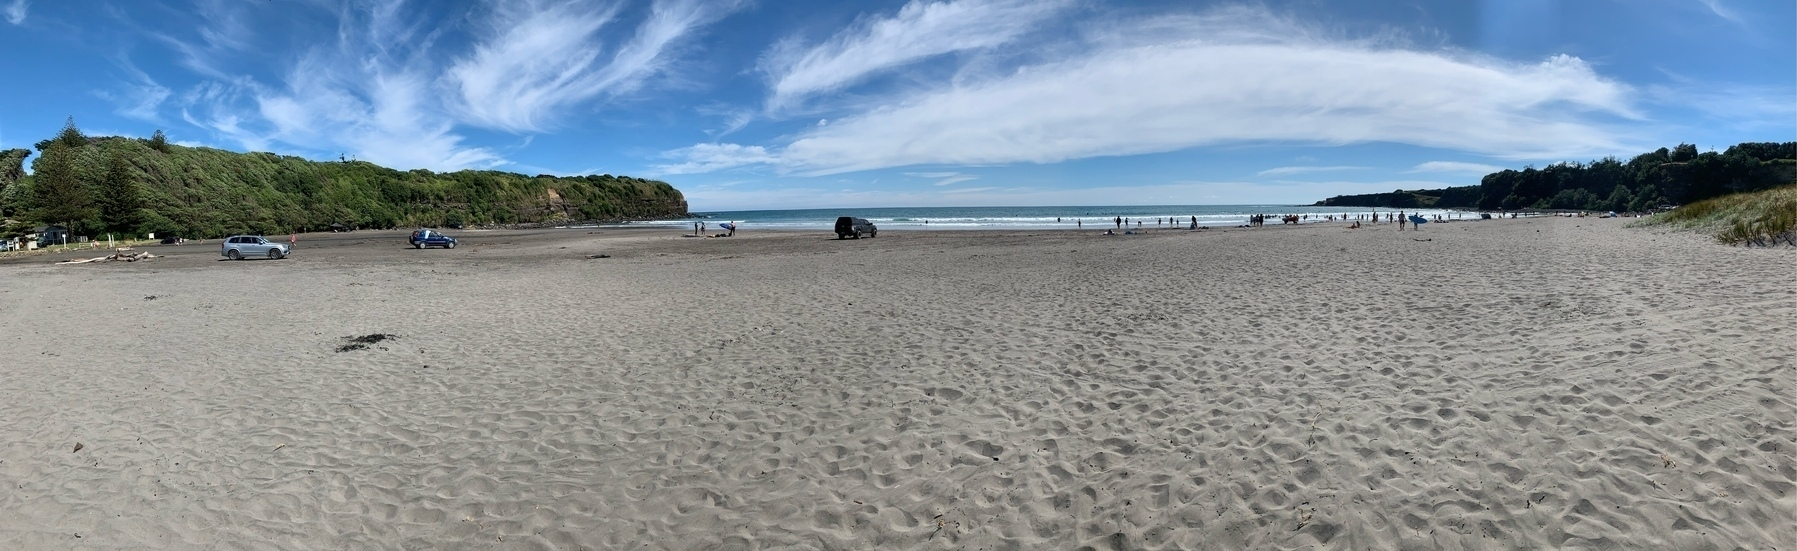 Ōpunake beach from the beach itself, looking out to the ocean water of the South Taranaki Bight